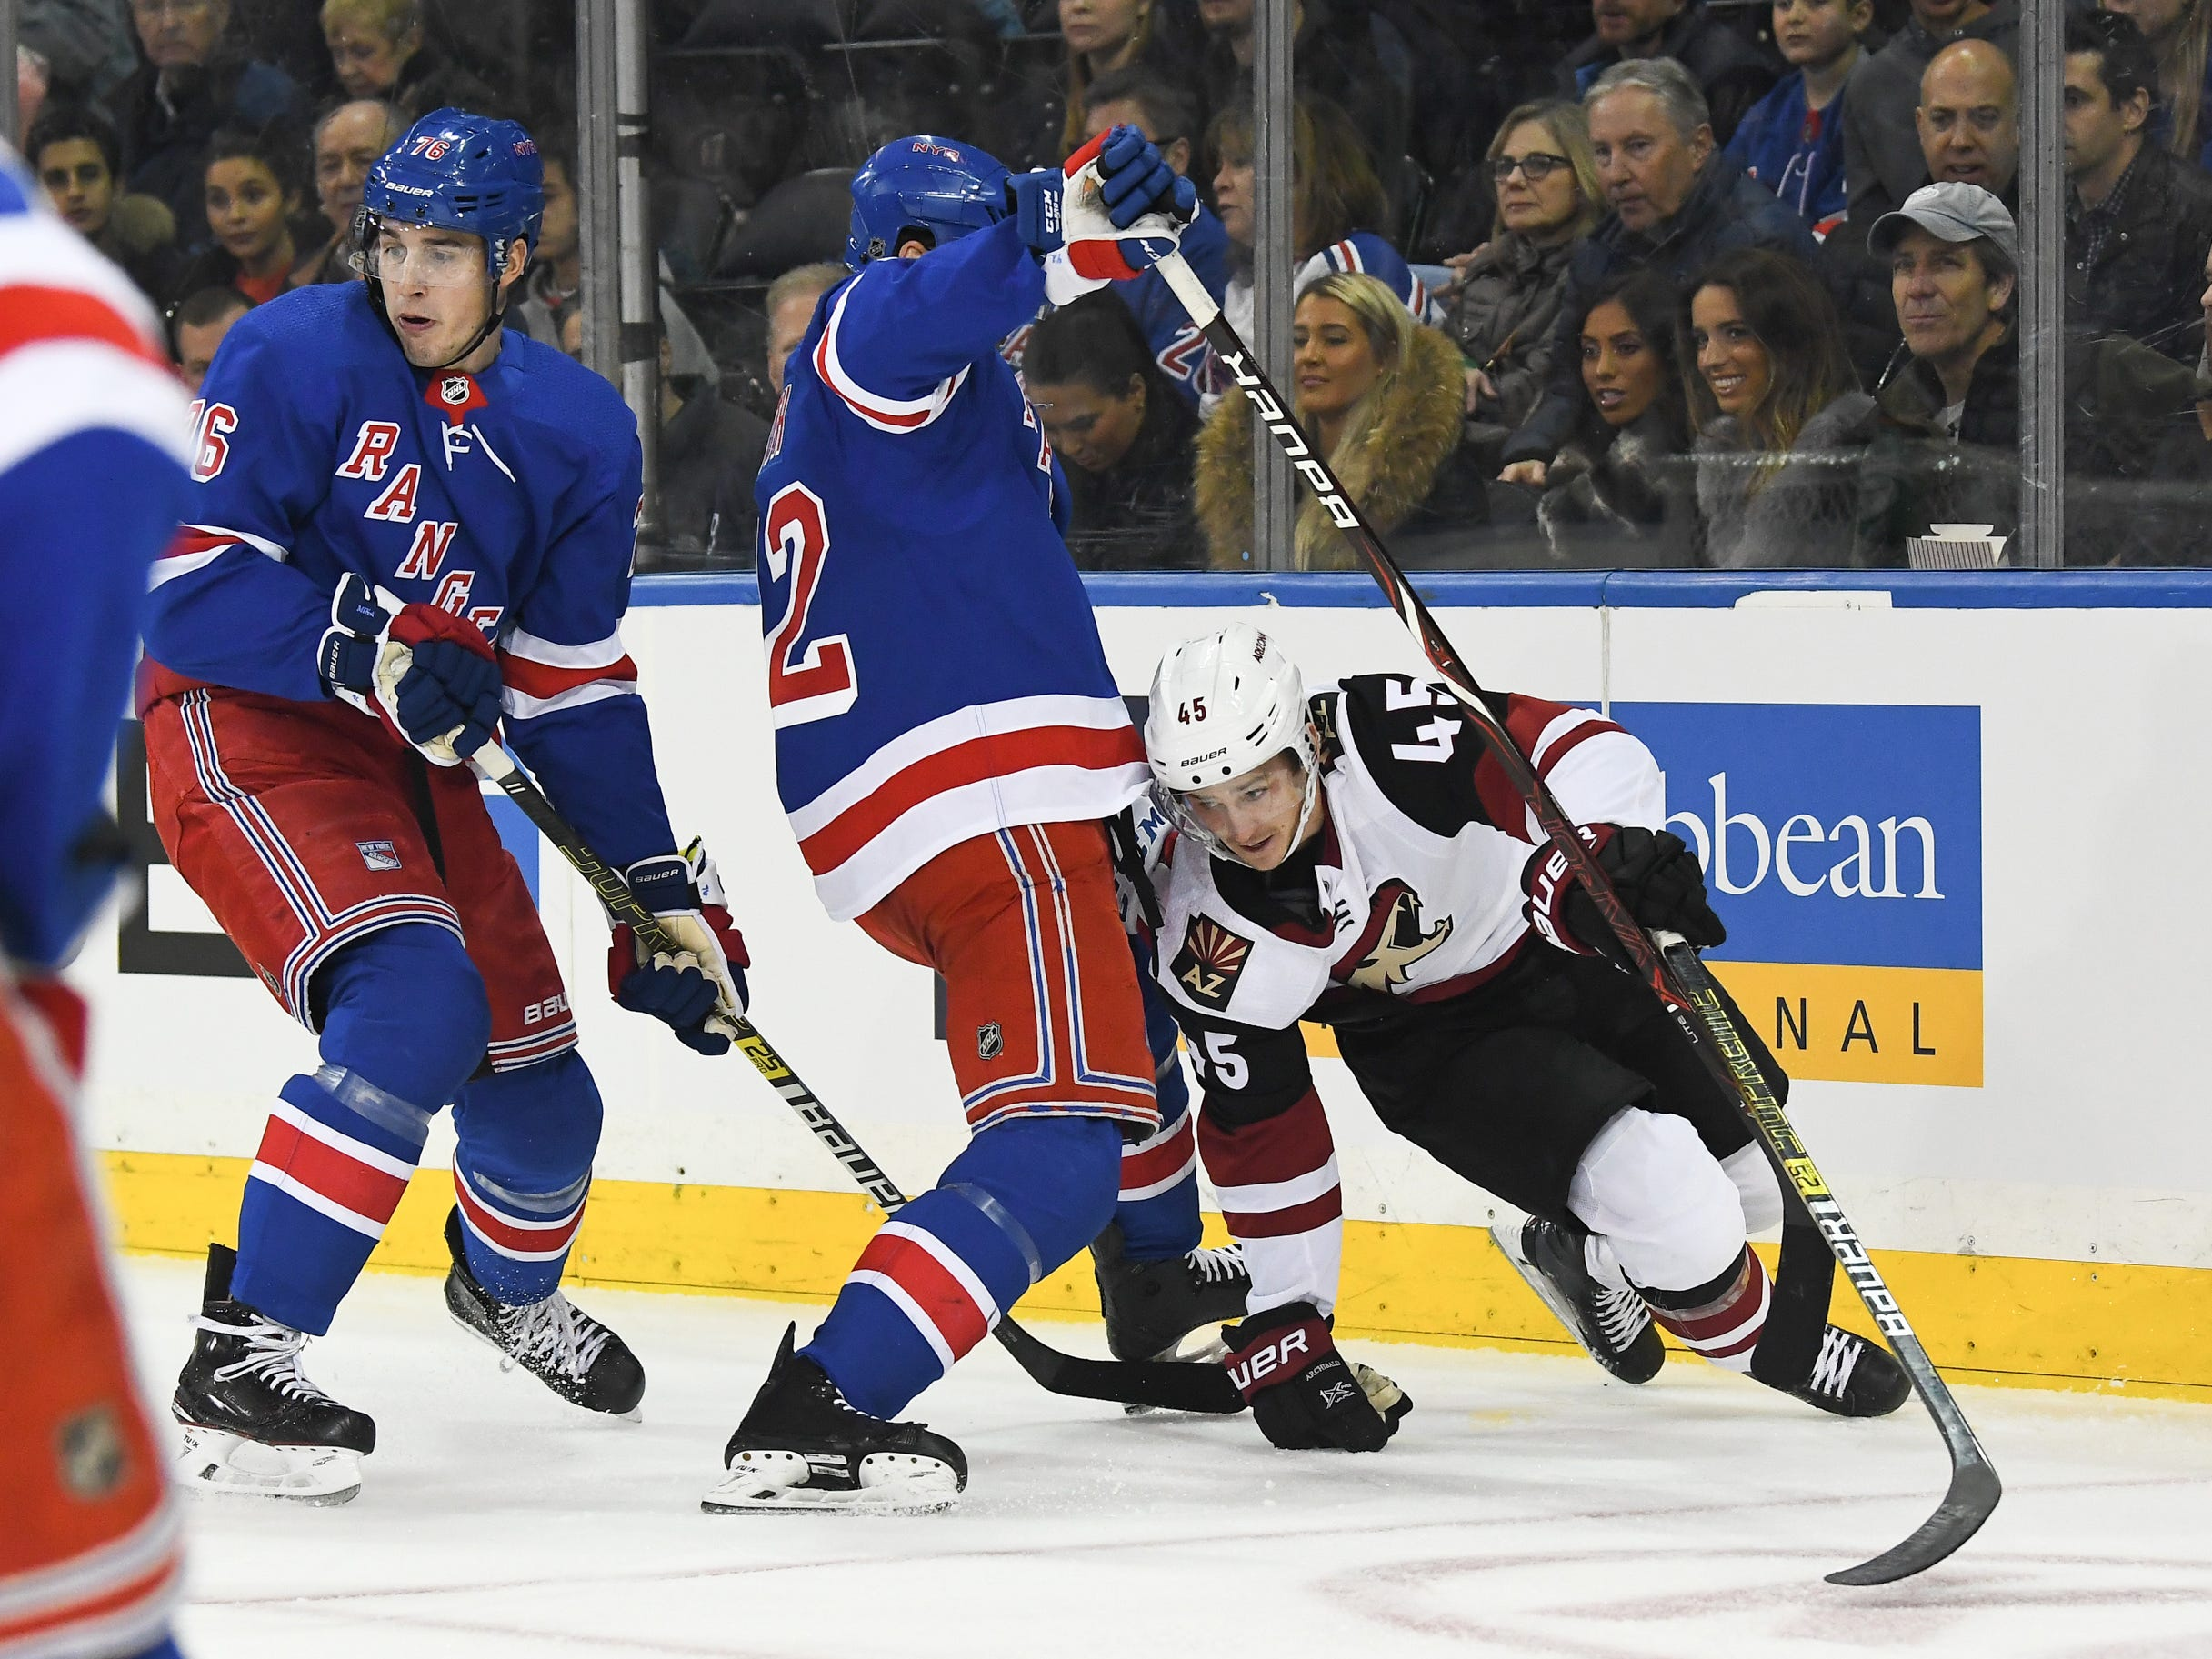 Dec 14, 2018; New York, NY, USA; New York Rangers defenseman Brendan Smith (42) collides with Arizona Coyotes right wing Josh Archibald (45) in the first period at Madison Square Garden. Mandatory Credit: Catalina Fragoso-USA TODAY Sports